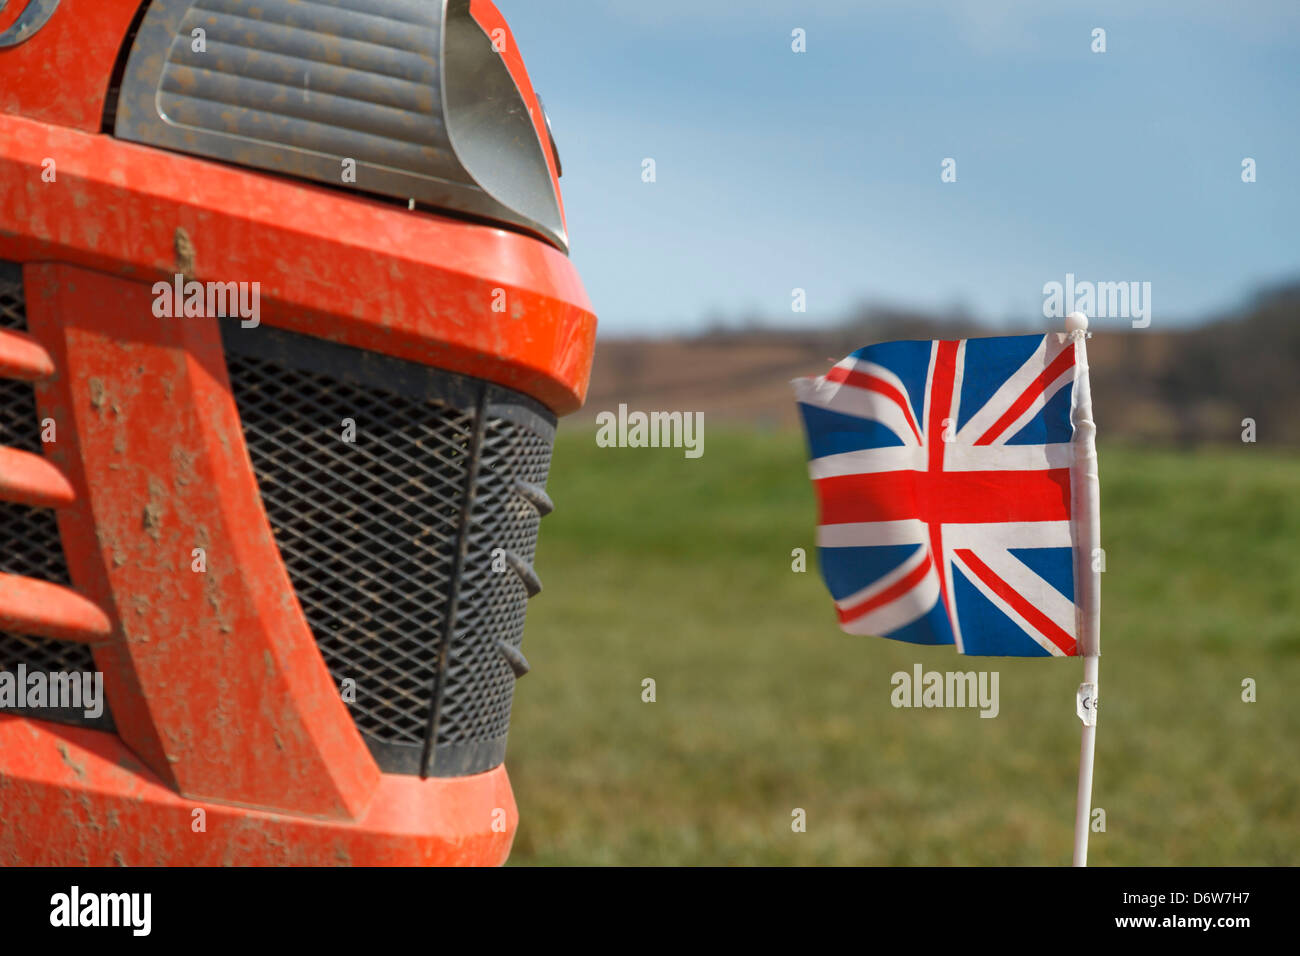 A union jack British flag on the front of a small red tractor lawnmower lawn mower Stock Photo